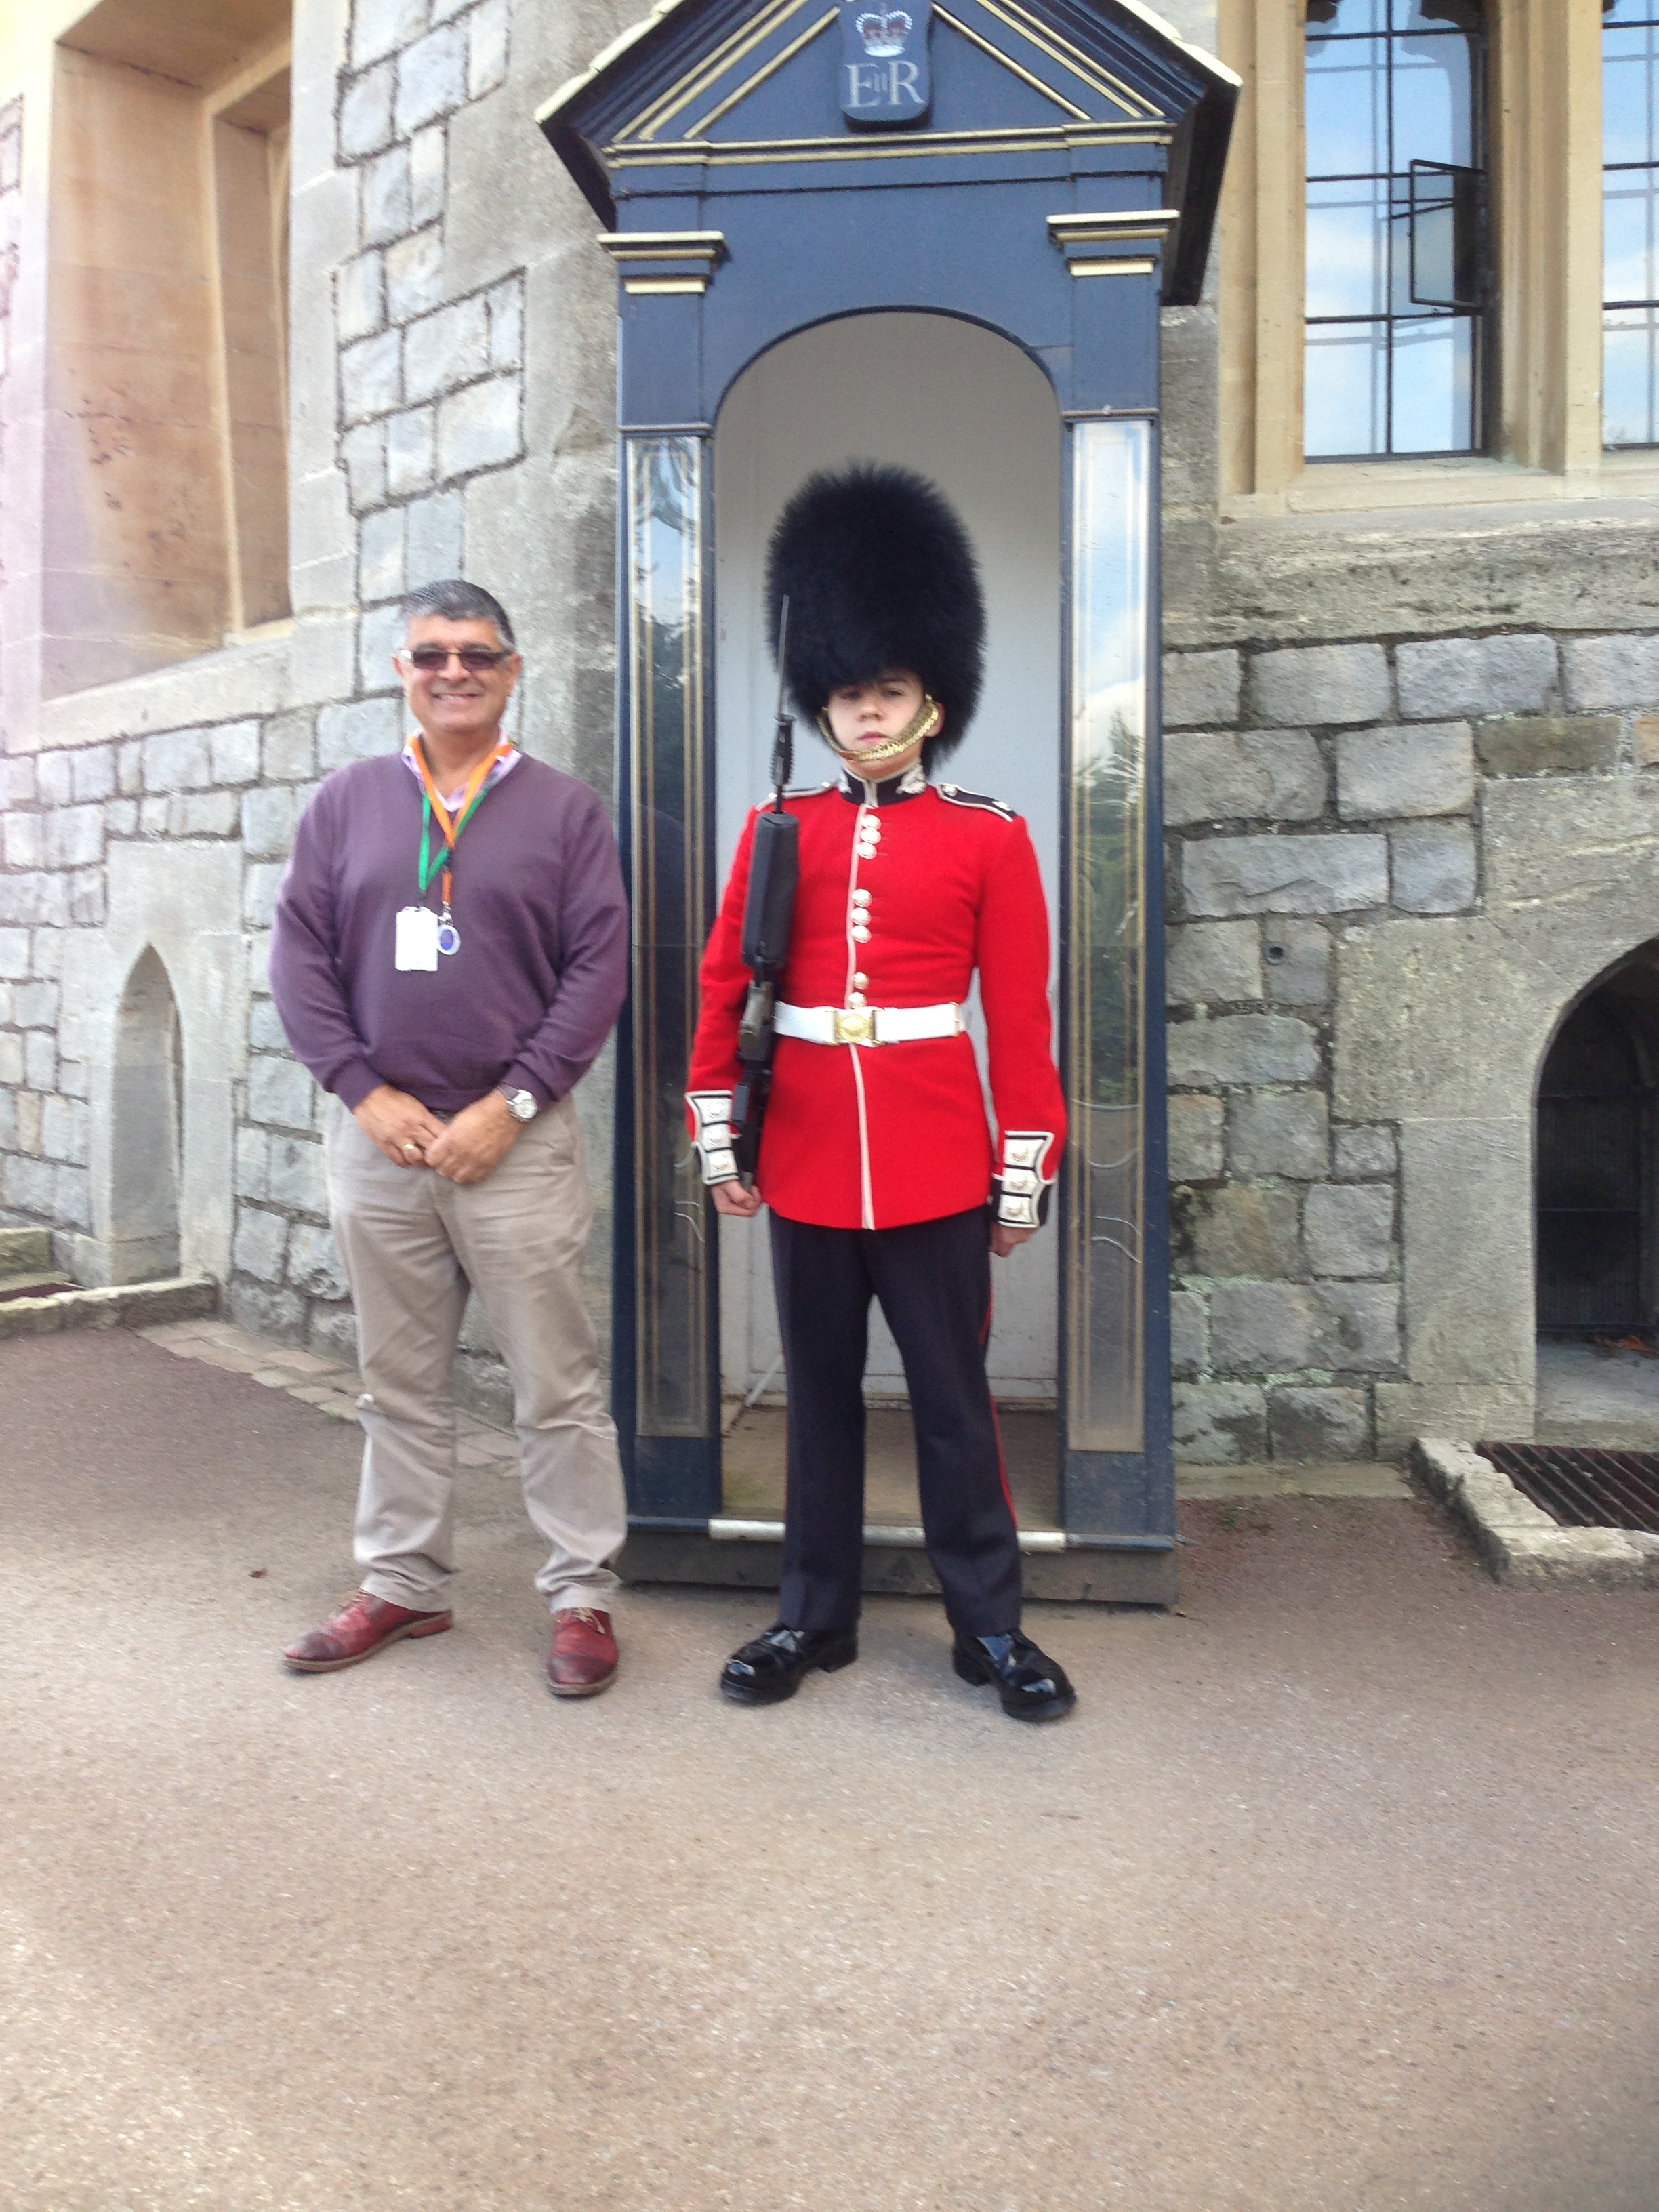 PHOTO opportunity with Guard at Windsor Castle